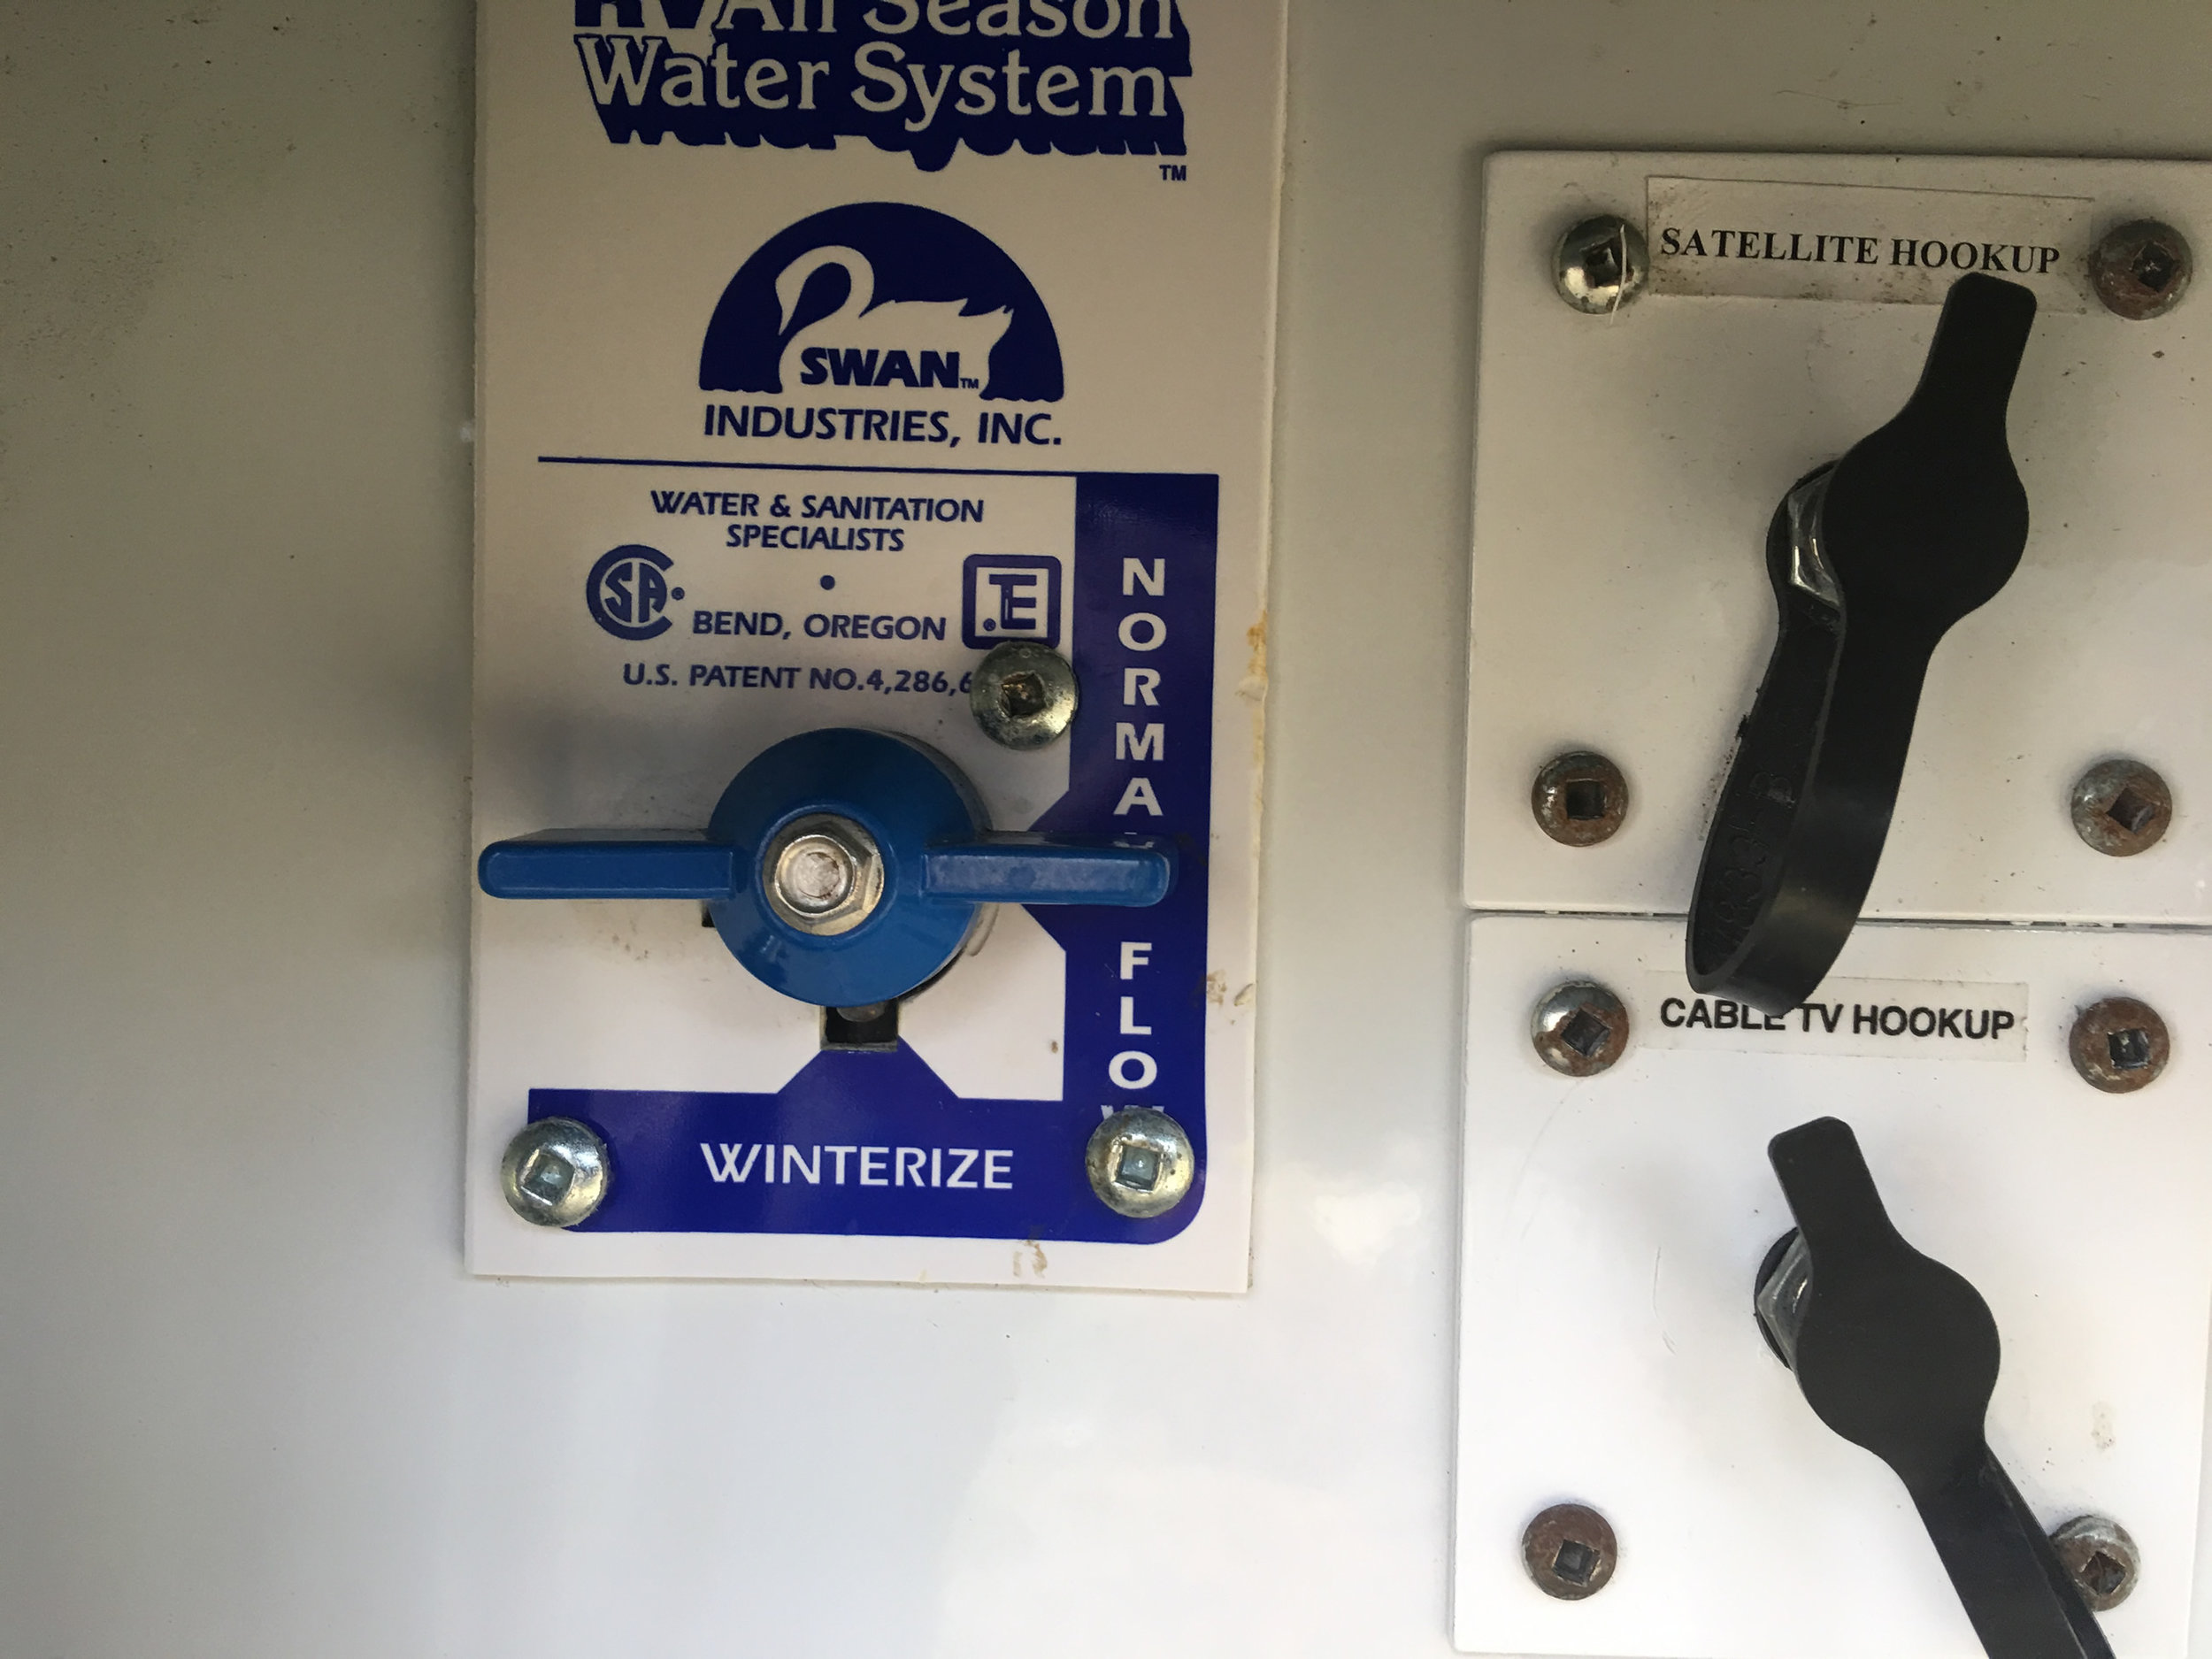 """Make sure you change the water system valve from """"winterize"""" to """"normal"""" before you begin."""